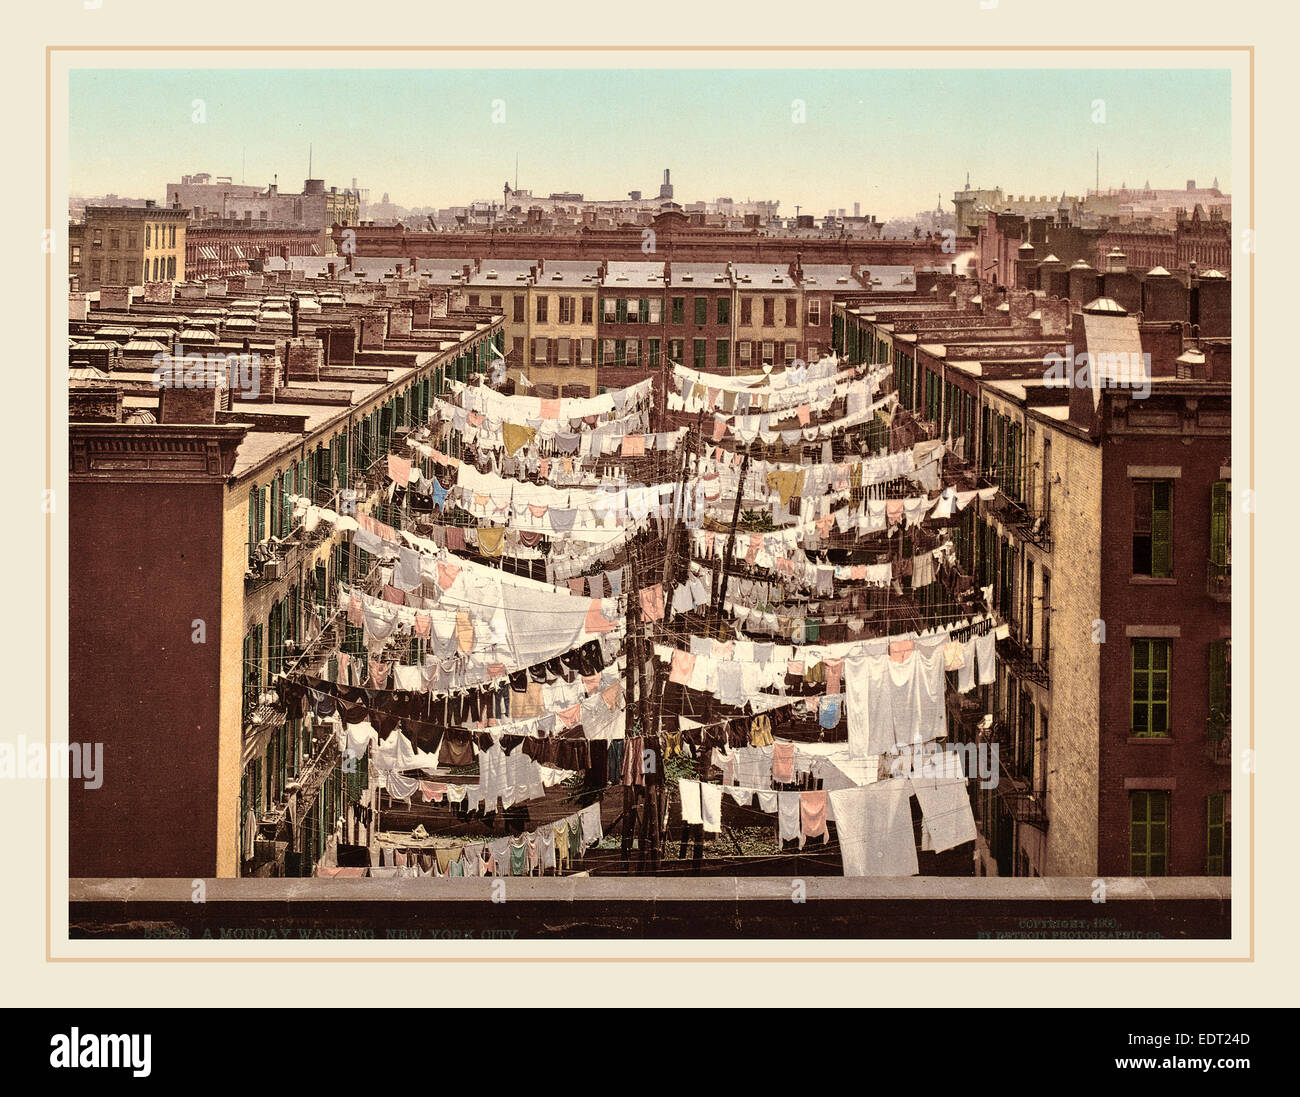 American 19th Century (Detroit Photographic Co.), A Monday Washing, New York City, 1900, photochrom - Stock Image